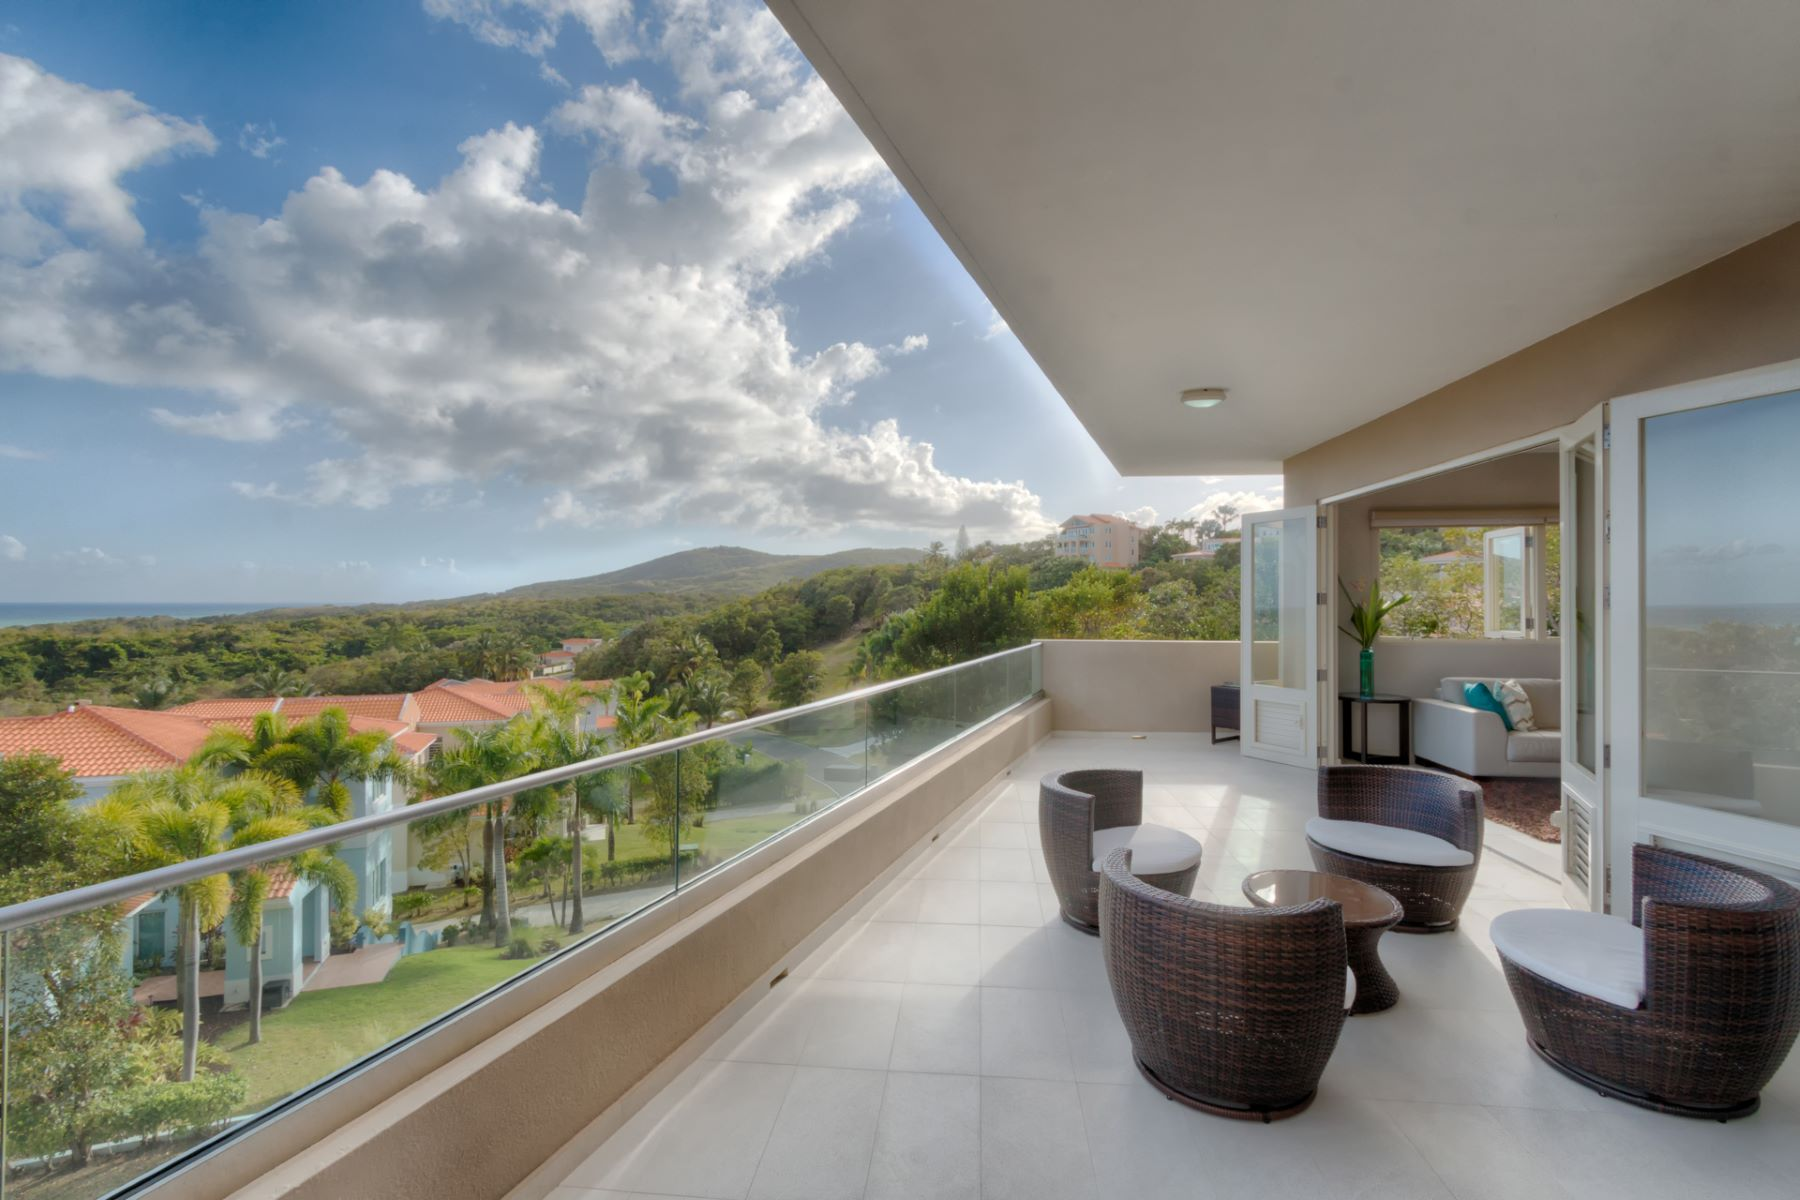 Additional photo for property listing at Ocean View Contemporary at Shell Castle Club 86 Shell Castle Club Palmas Del Mar, Puerto Rico 00791 Puerto Rico